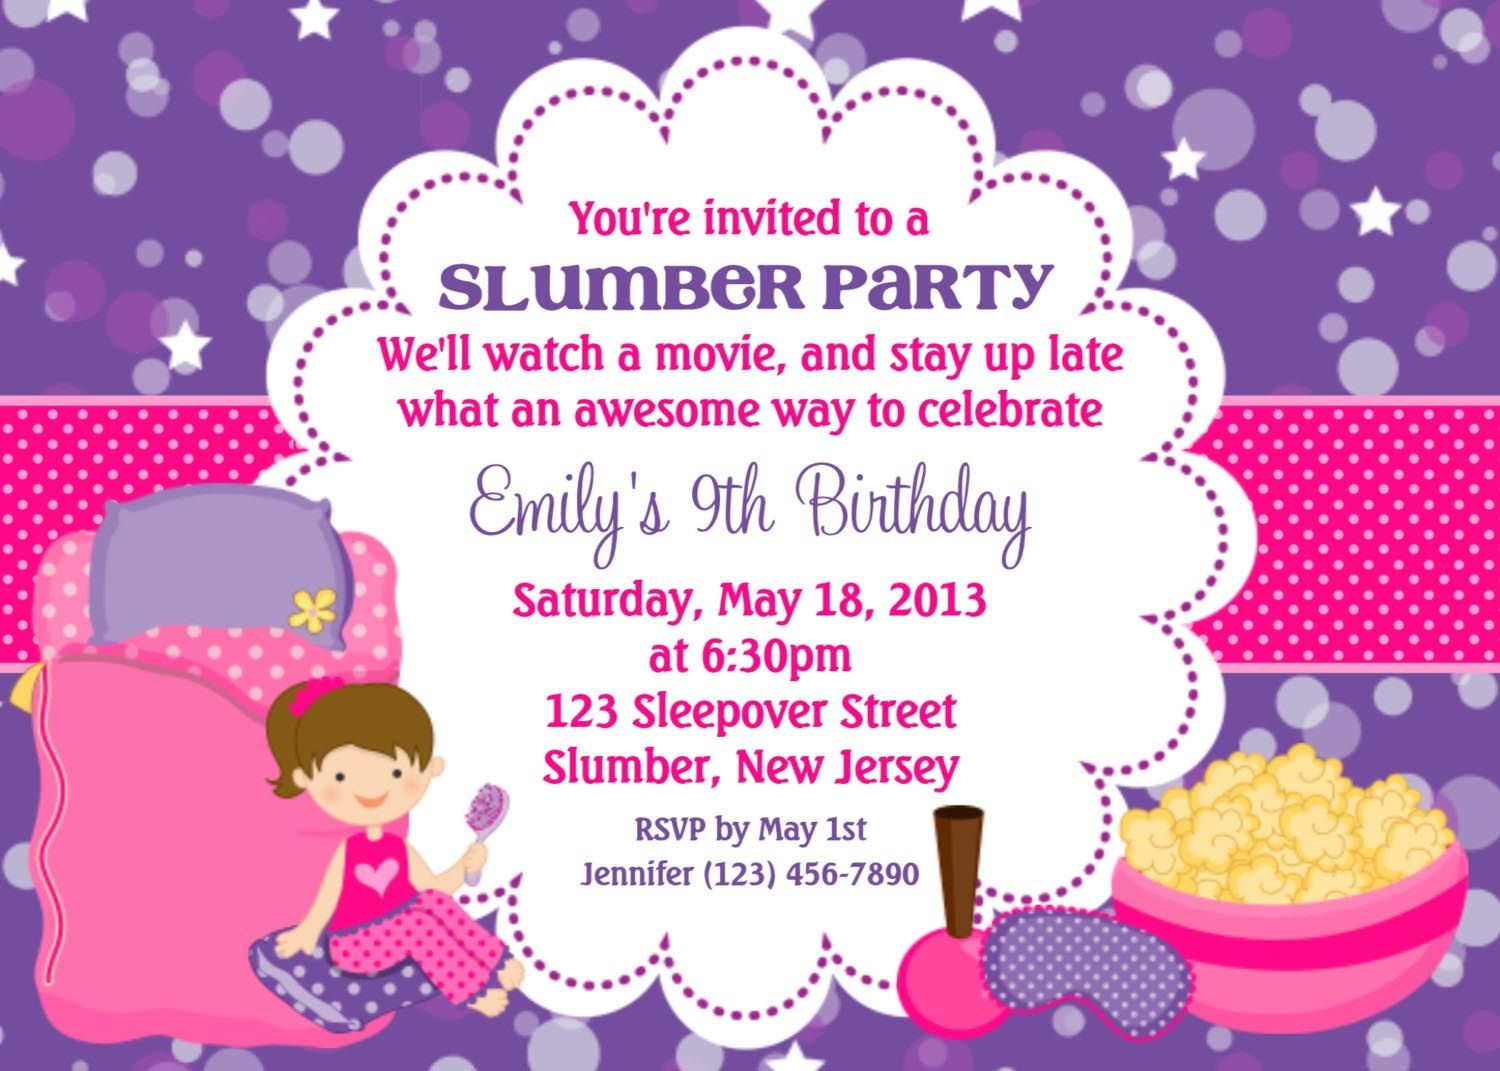 Spa party invitations templates free spa party pinterest spa sweet purple card background style birthday party invitation wording with popcorn images card pattern 23 best pictures from birthday party invitation stopboris Image collections